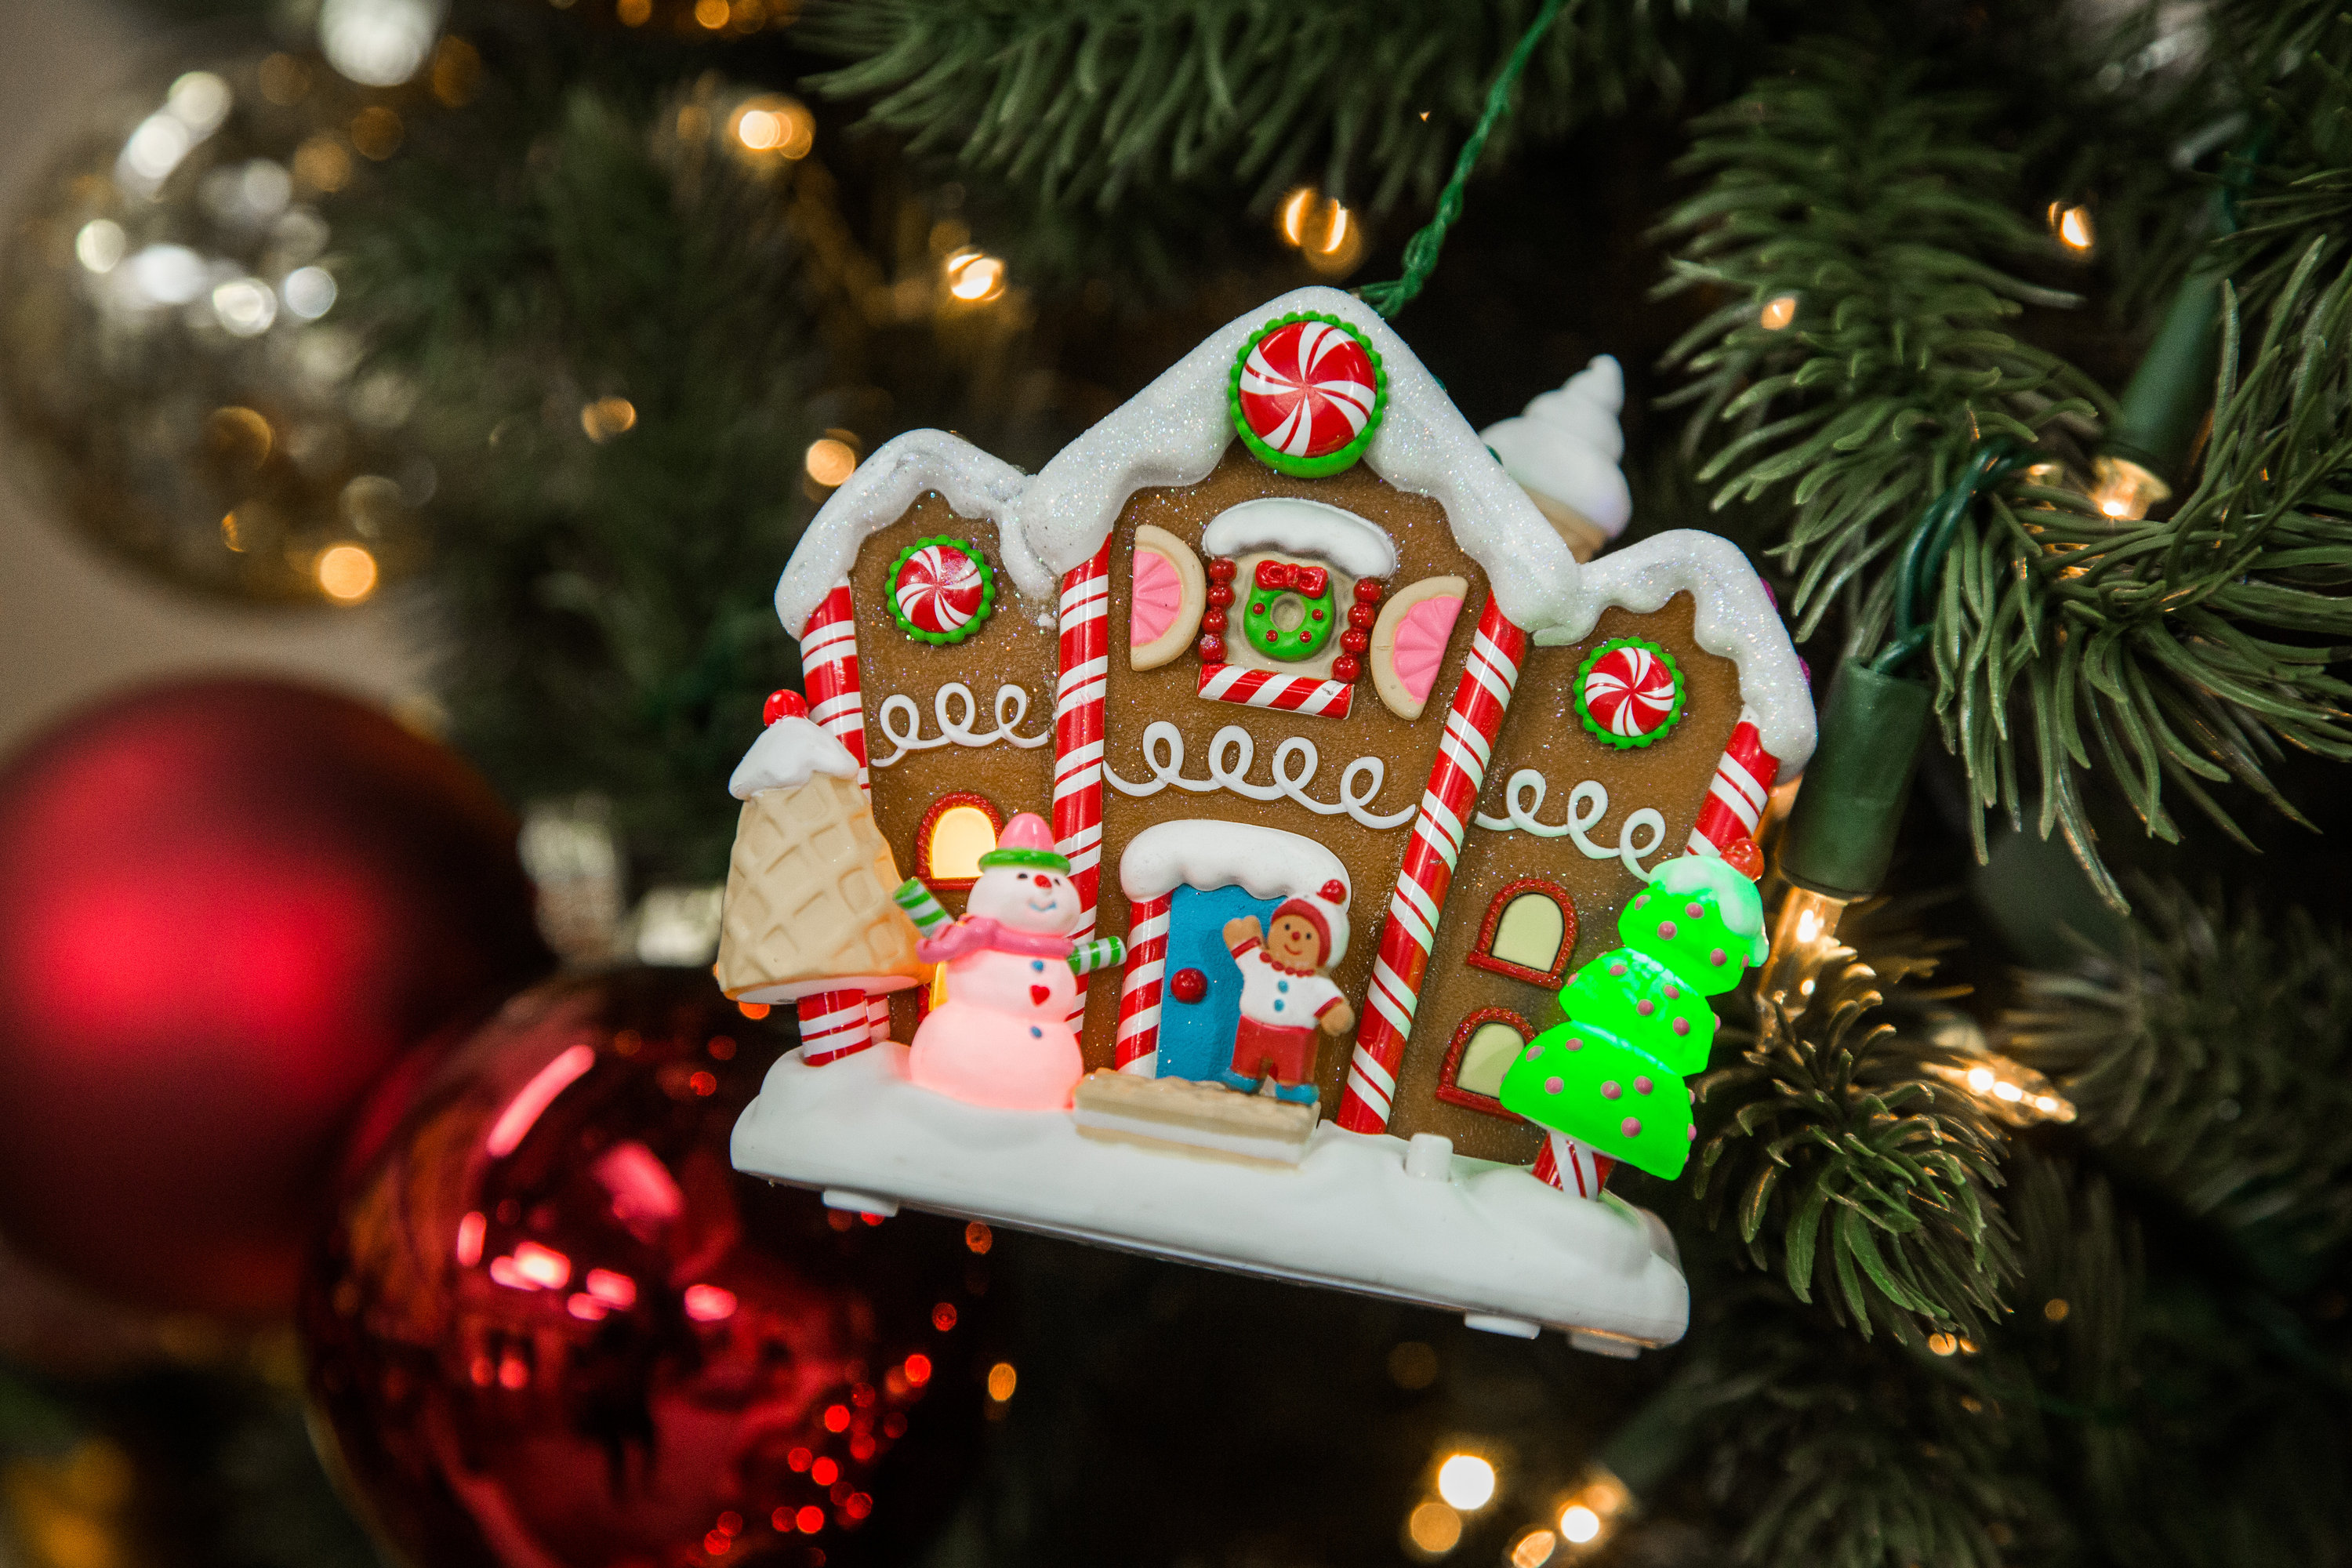 gingerbread merriest house in town ornament